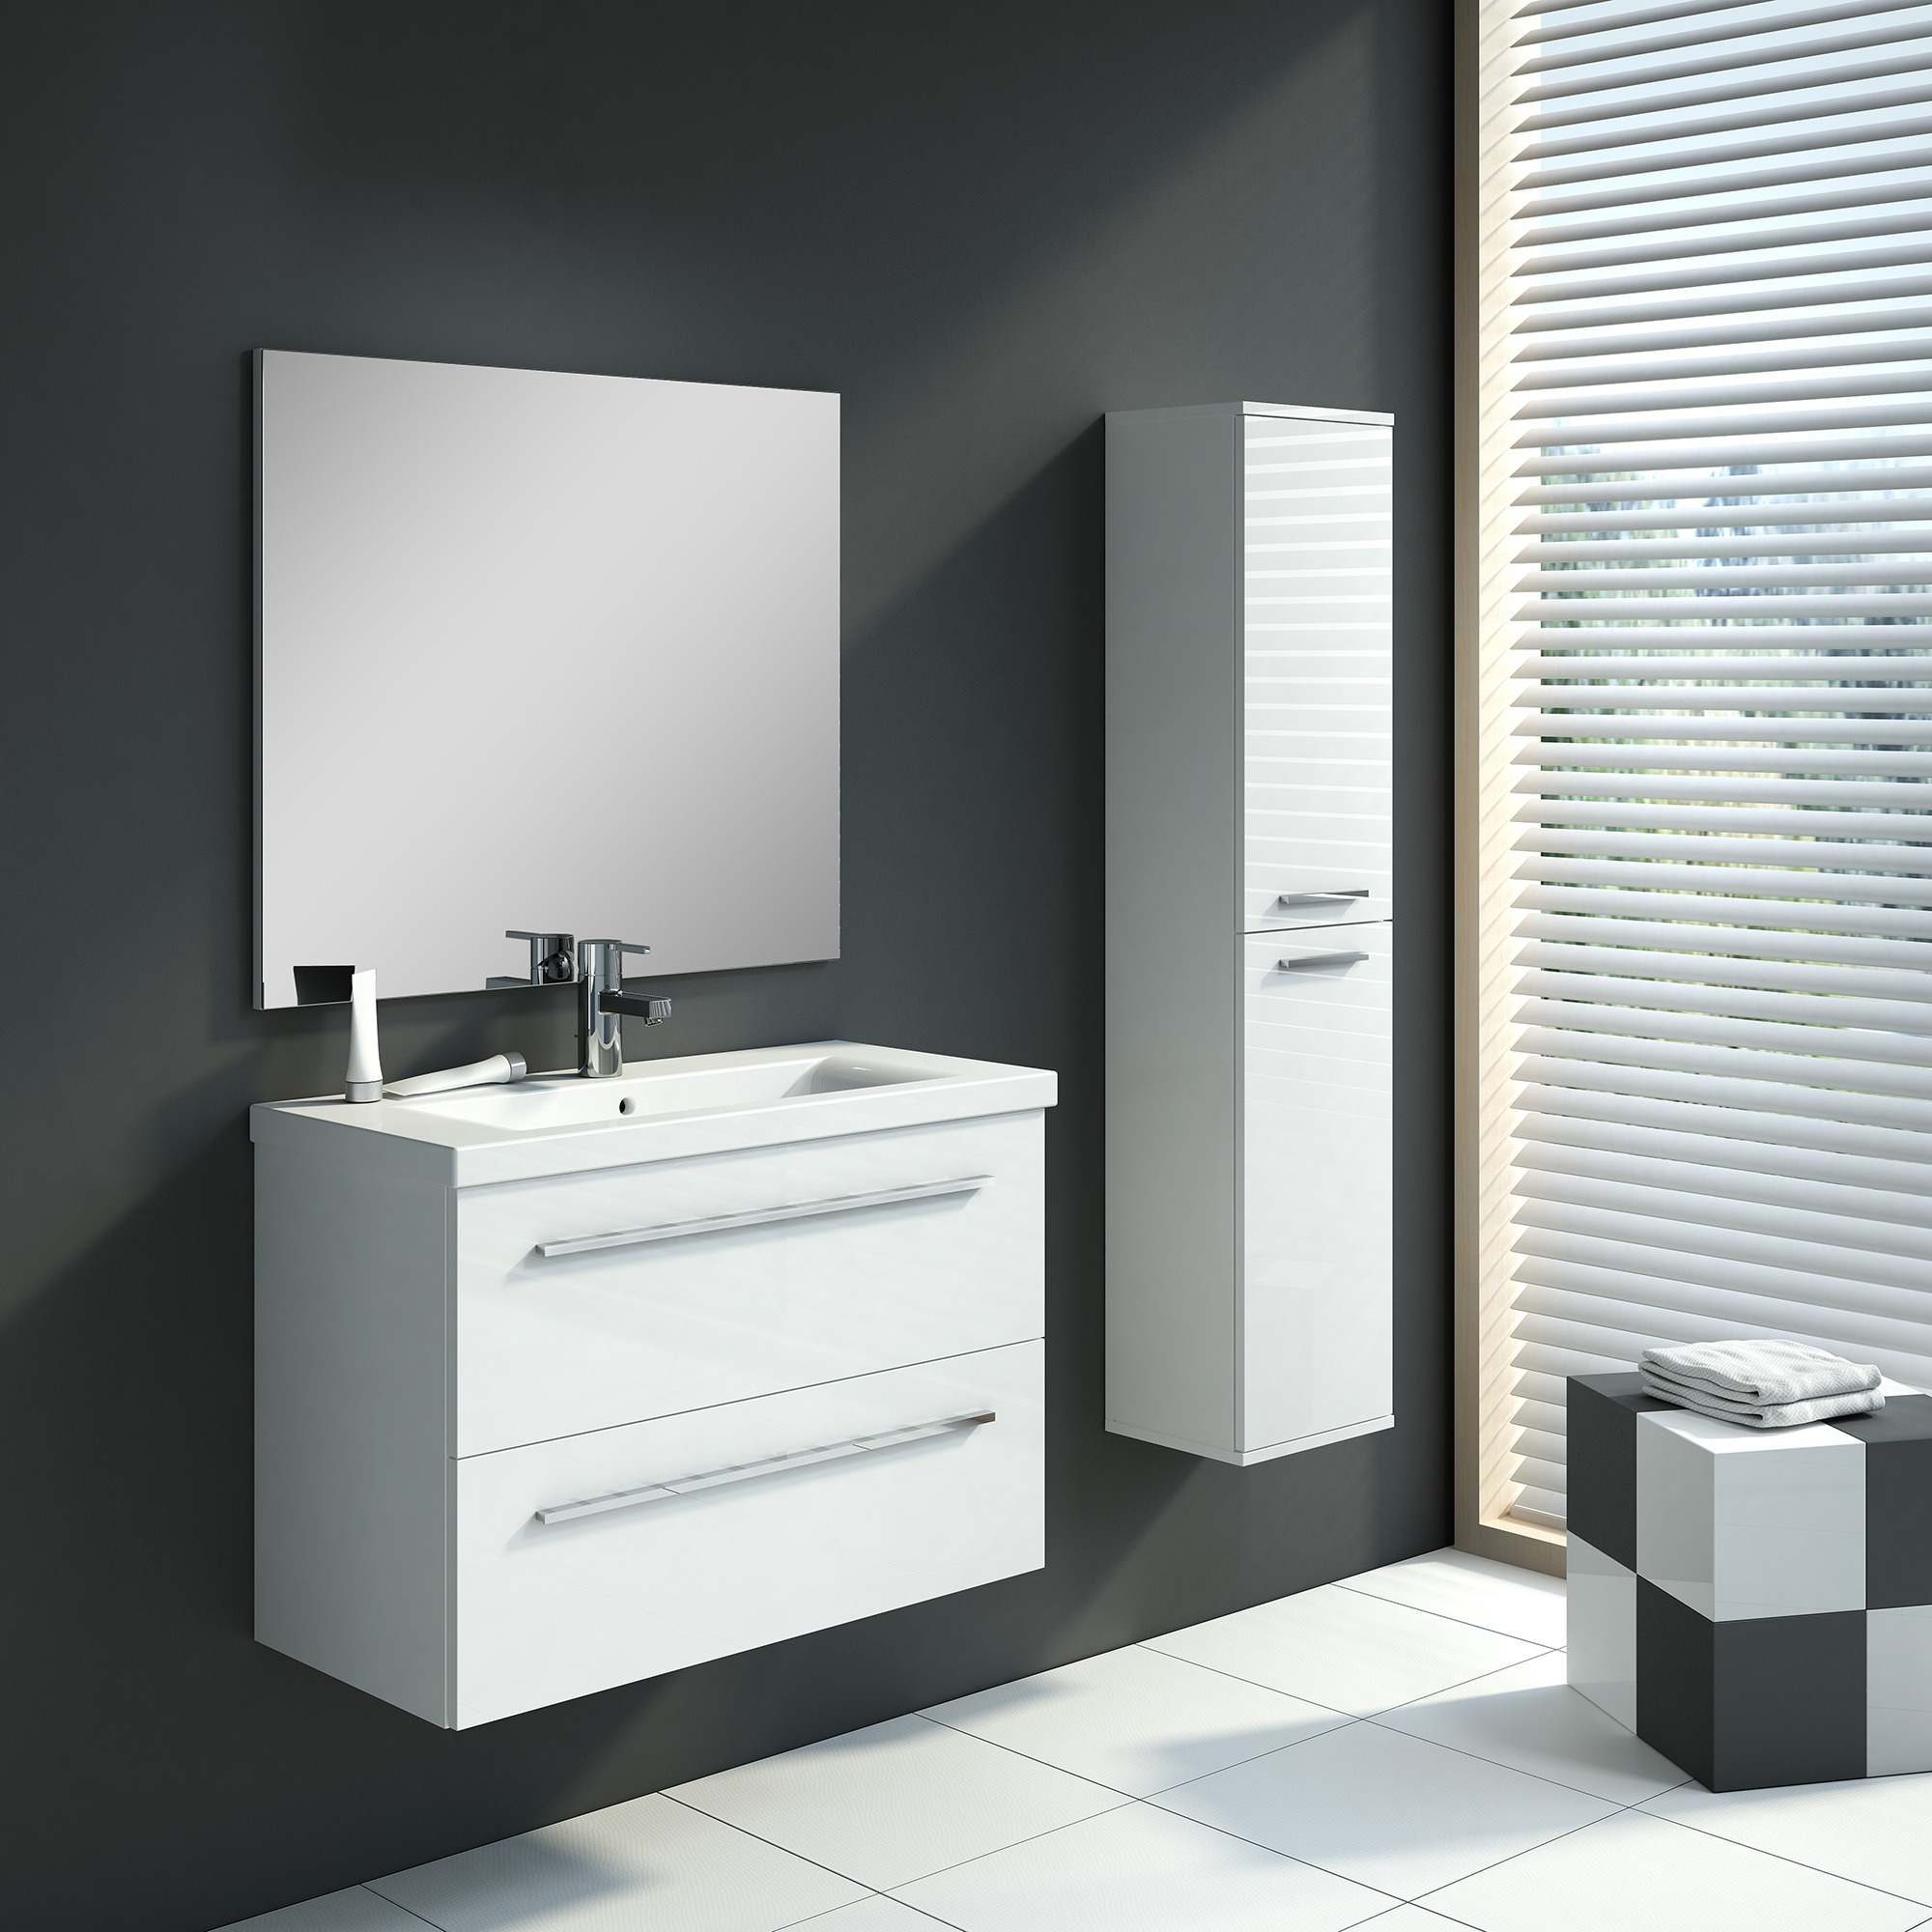 meuble de salle de bain hera set 80 cm blanc avec colonne. Black Bedroom Furniture Sets. Home Design Ideas